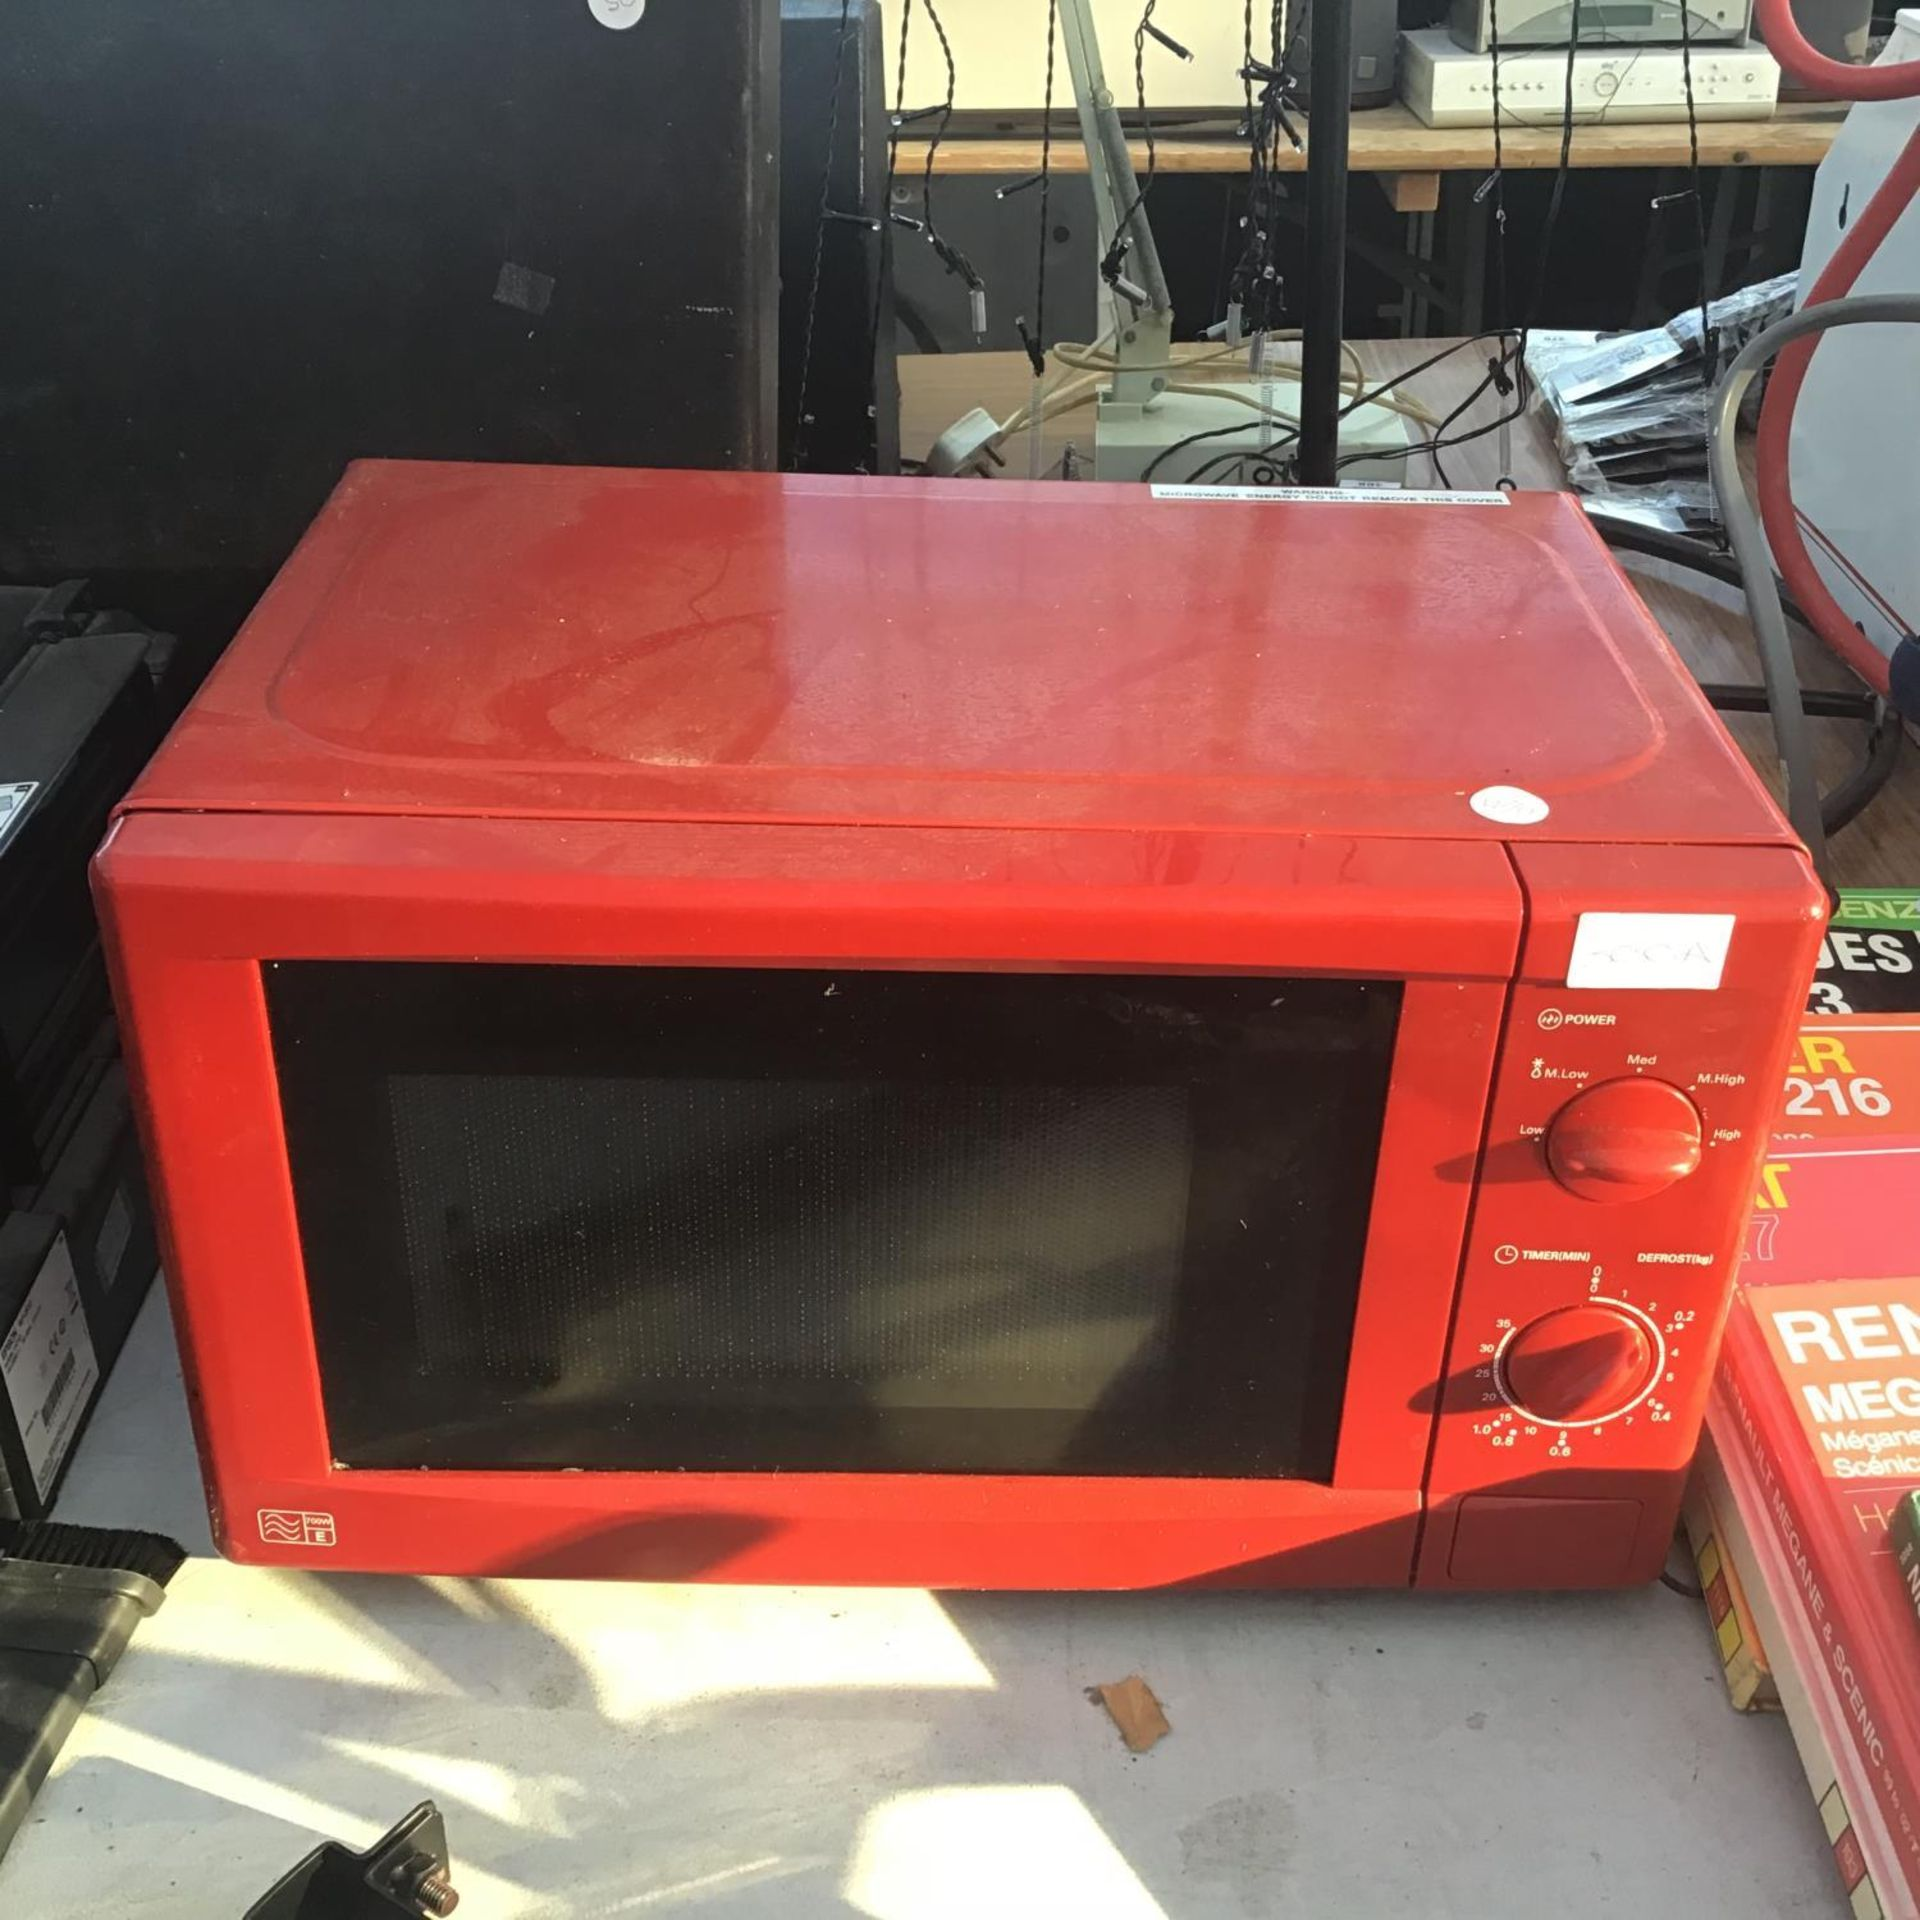 Lot 300A - A RED MICROWAVE IN WORKING ORDER